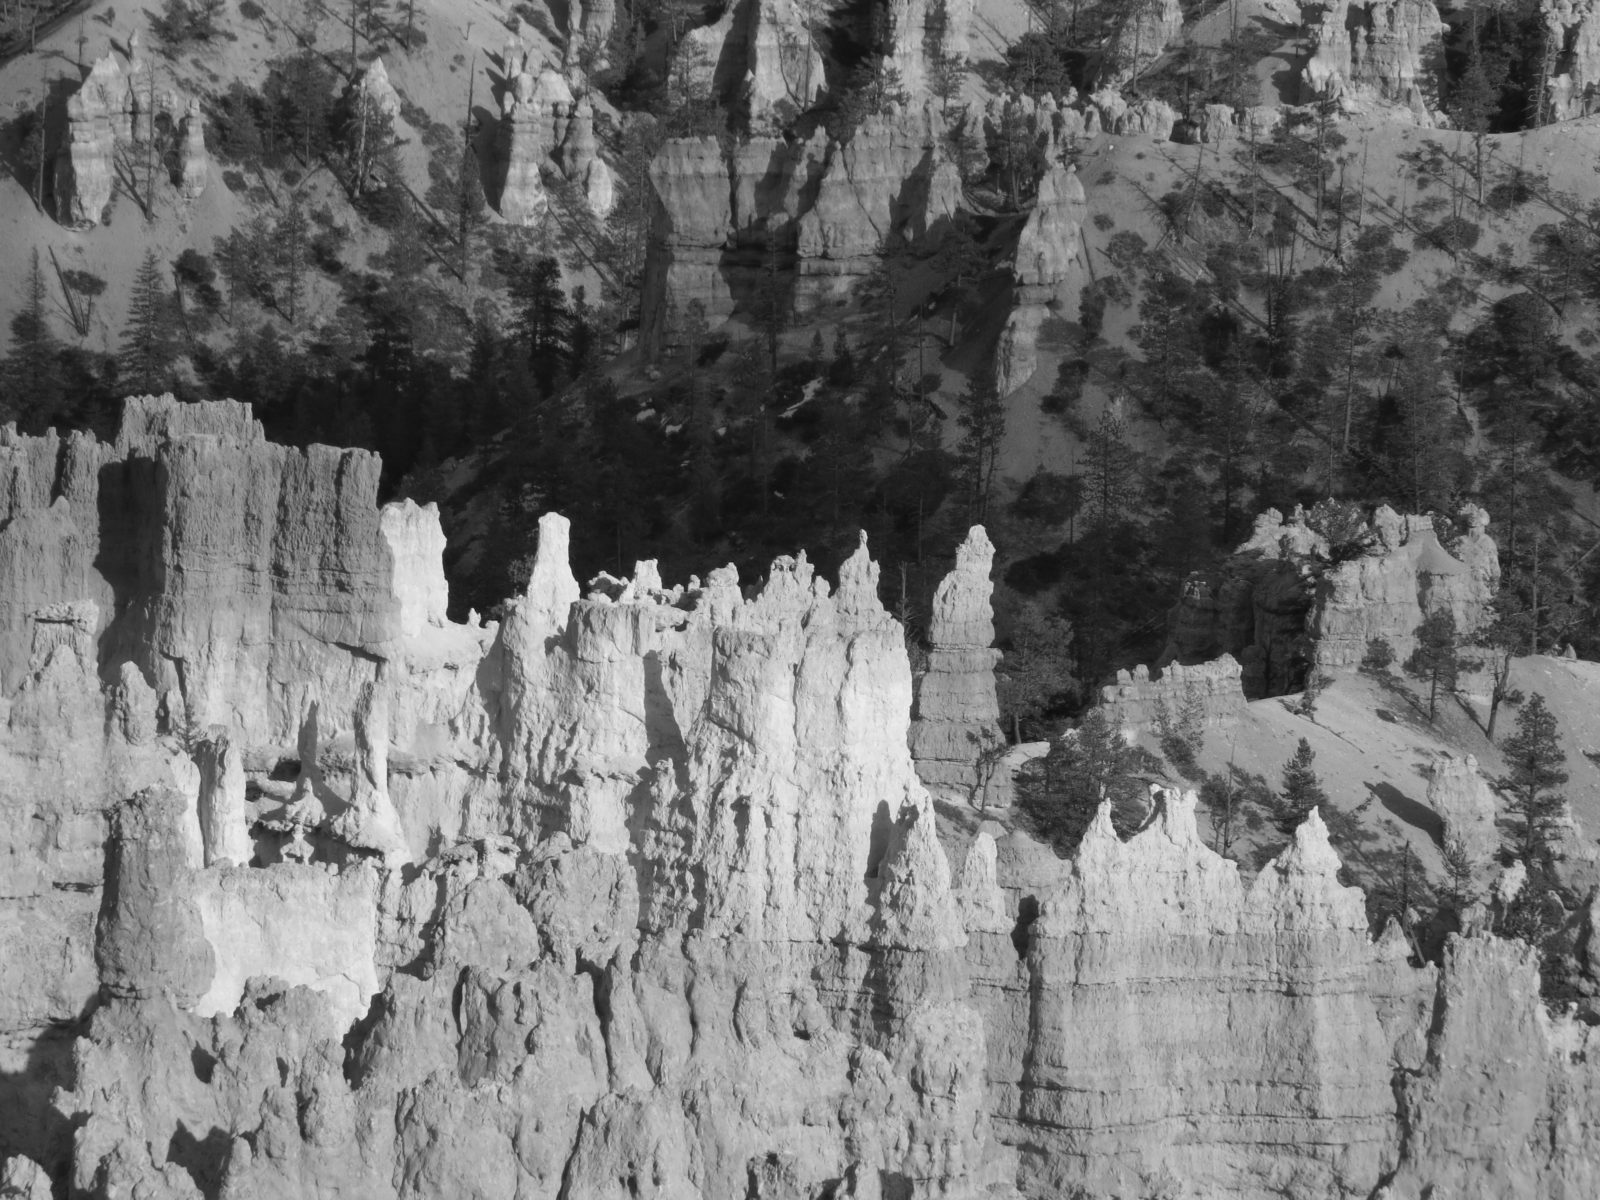 Hoodoos in Black and White